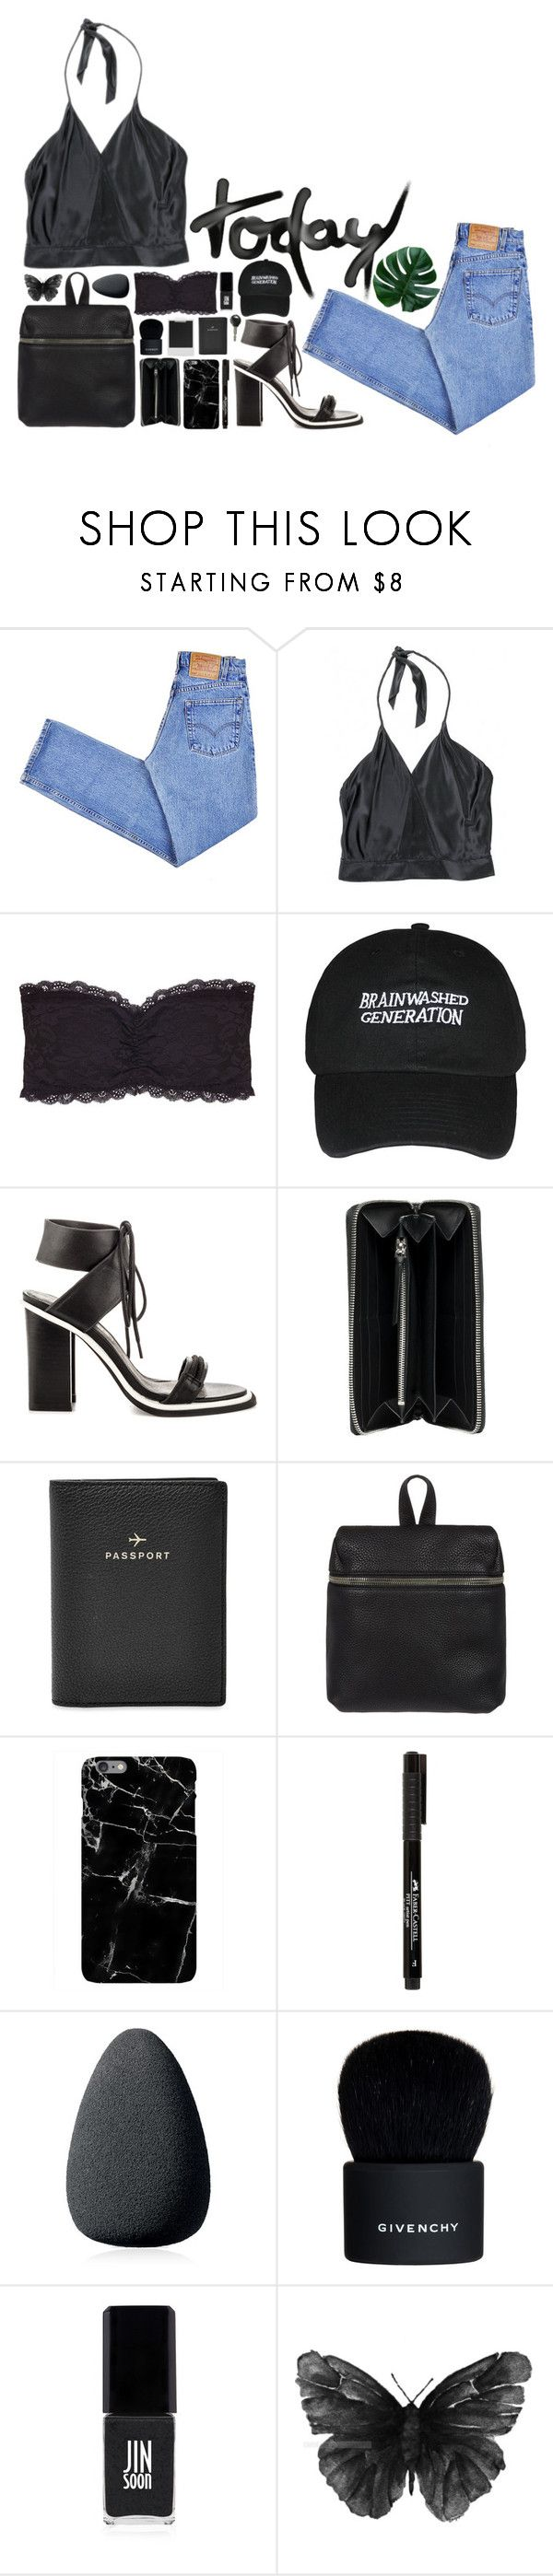 """today"" by rach-tulla ❤ liked on Polyvore featuring Levi's, Zac Posen, Humble Chic, Sol Sana, Balenciaga, Polaroid, FOSSIL, Kara, Christian Dior and Givenchy"